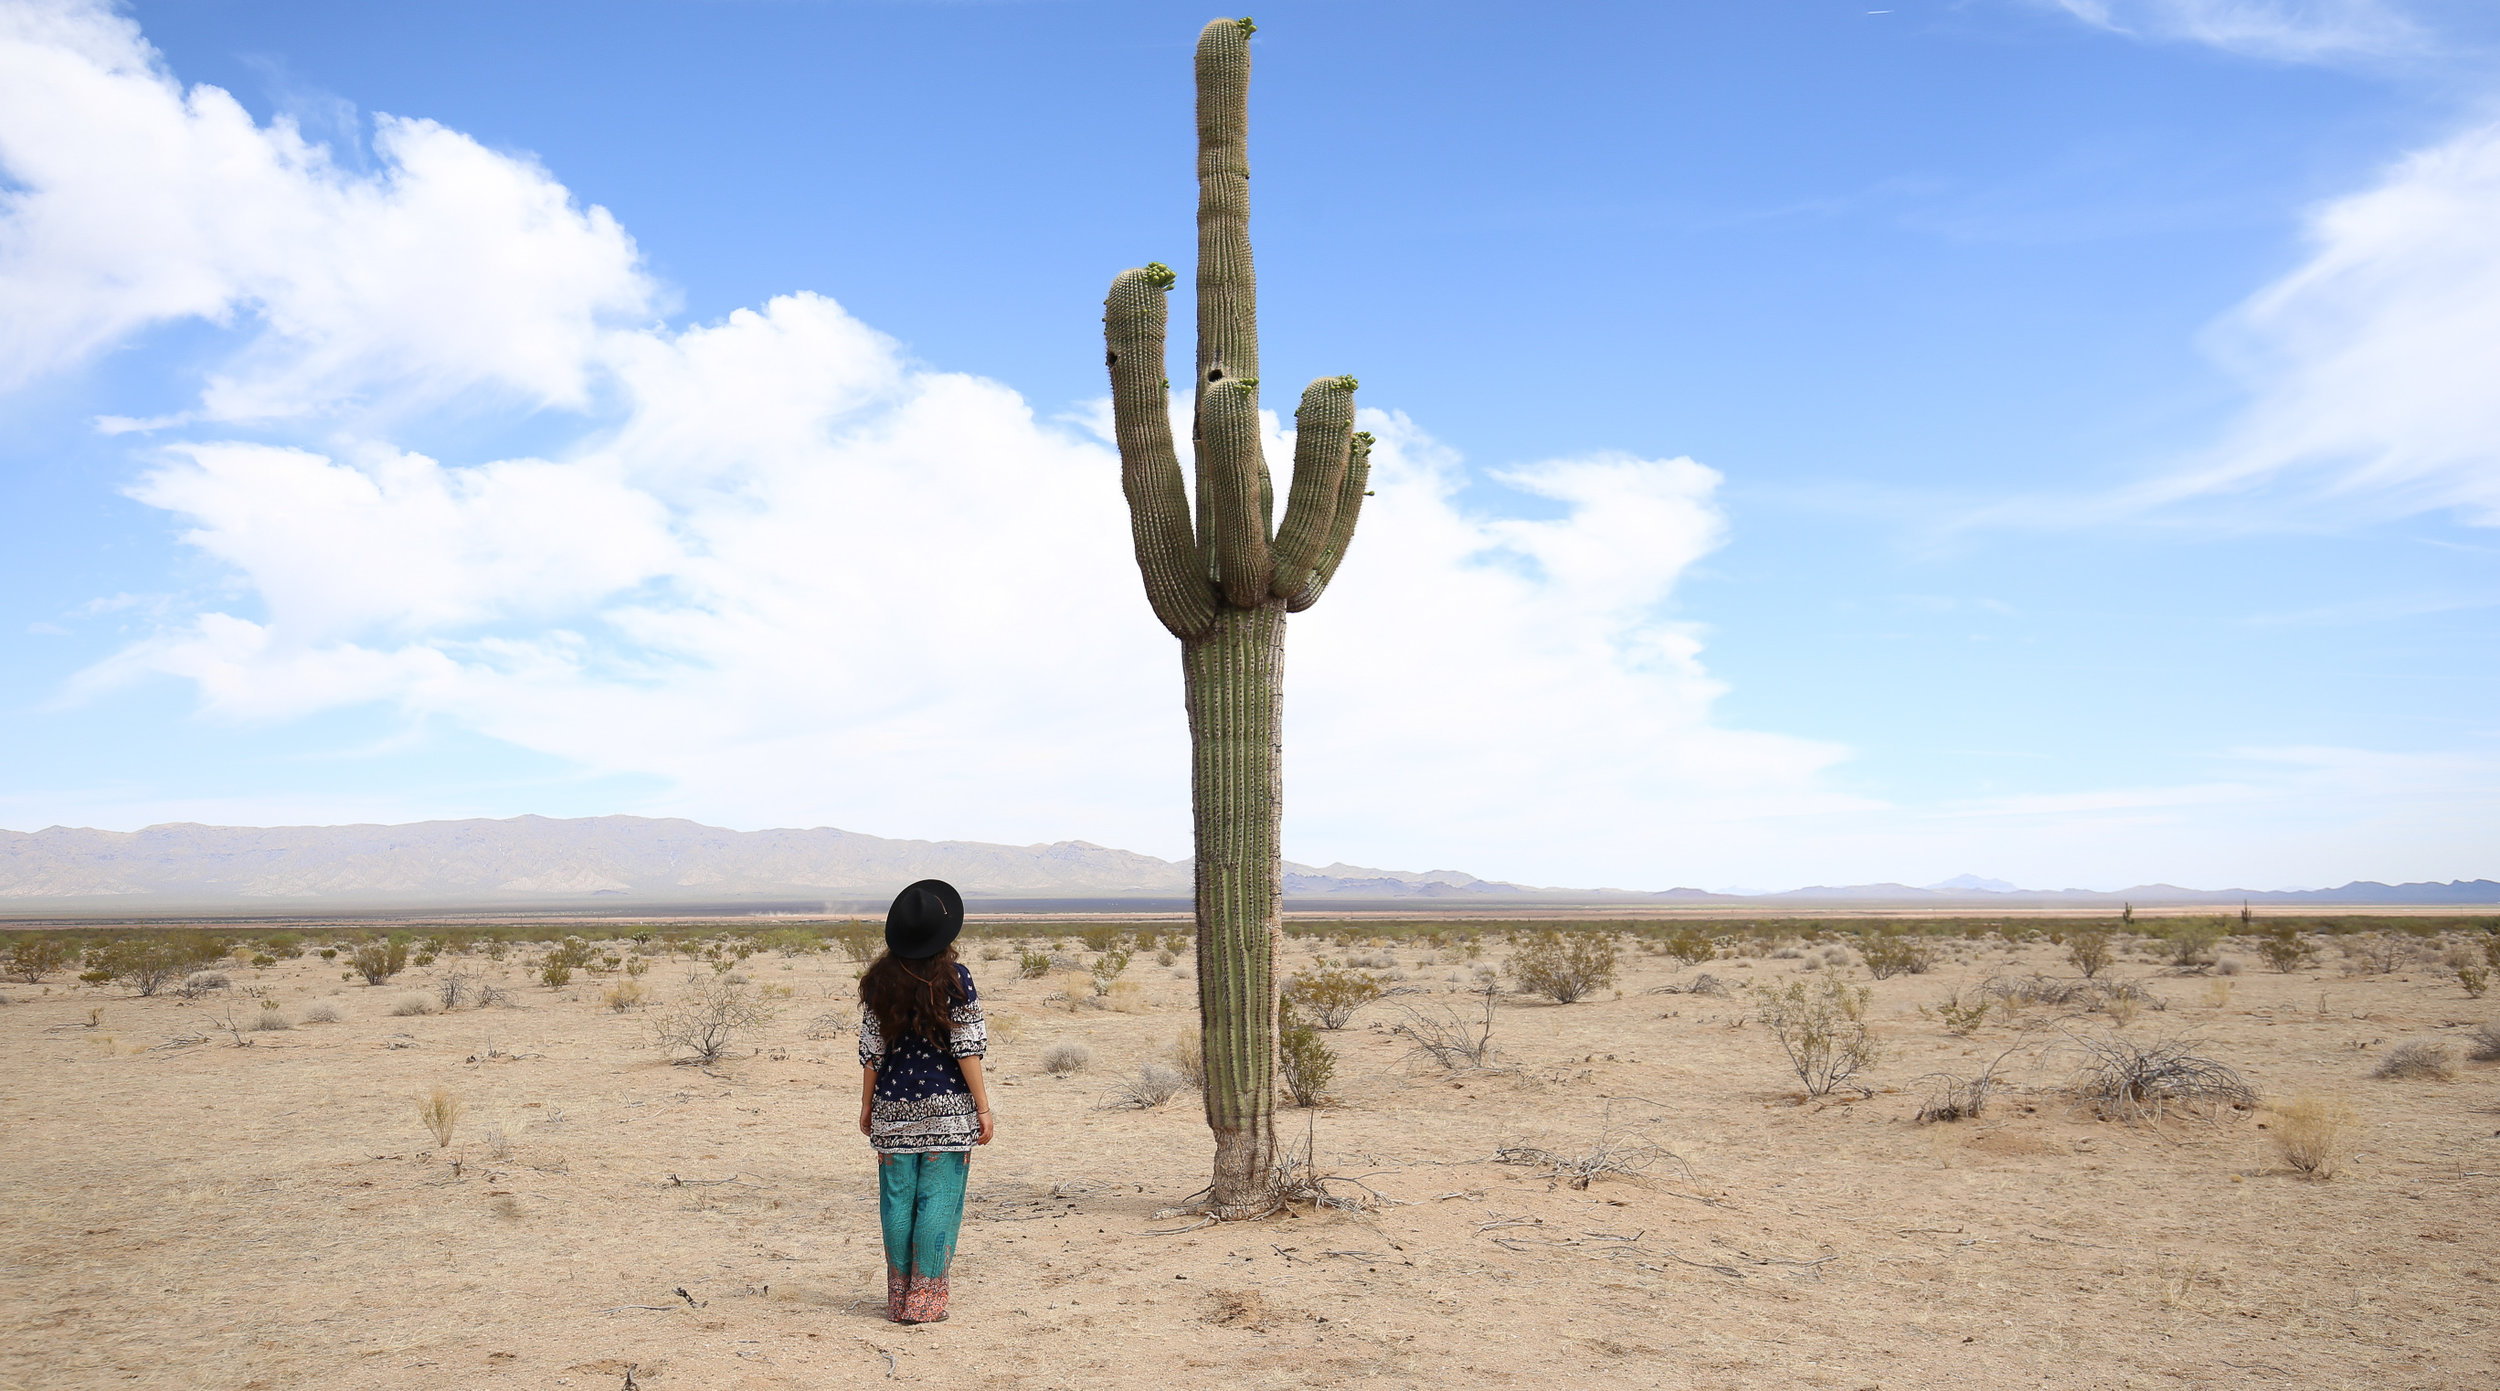 saguaro-cactus-middle-of-nowhere